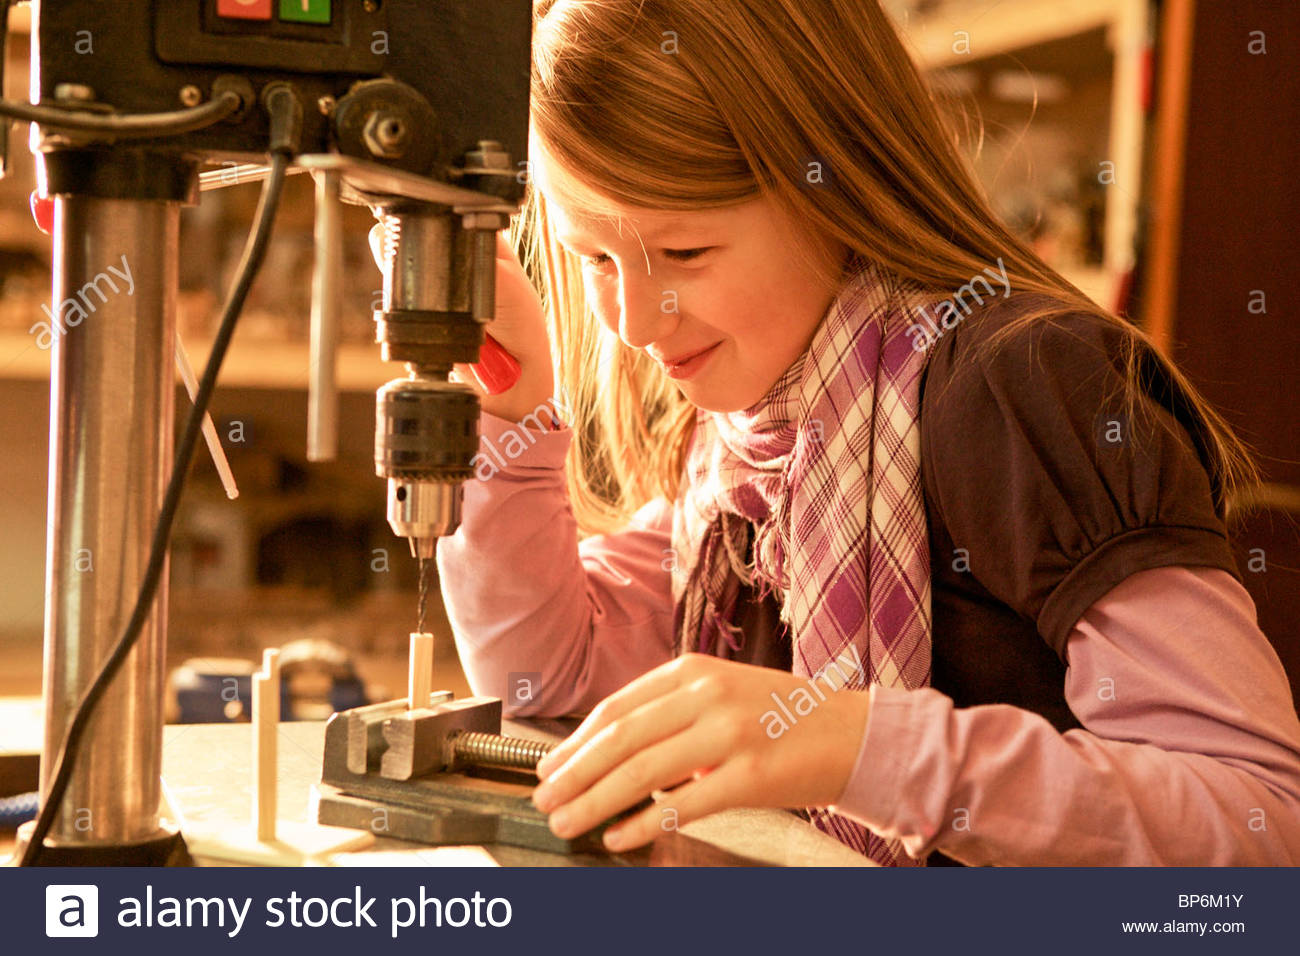 Young girl using drill on craft she is making - Stock Image